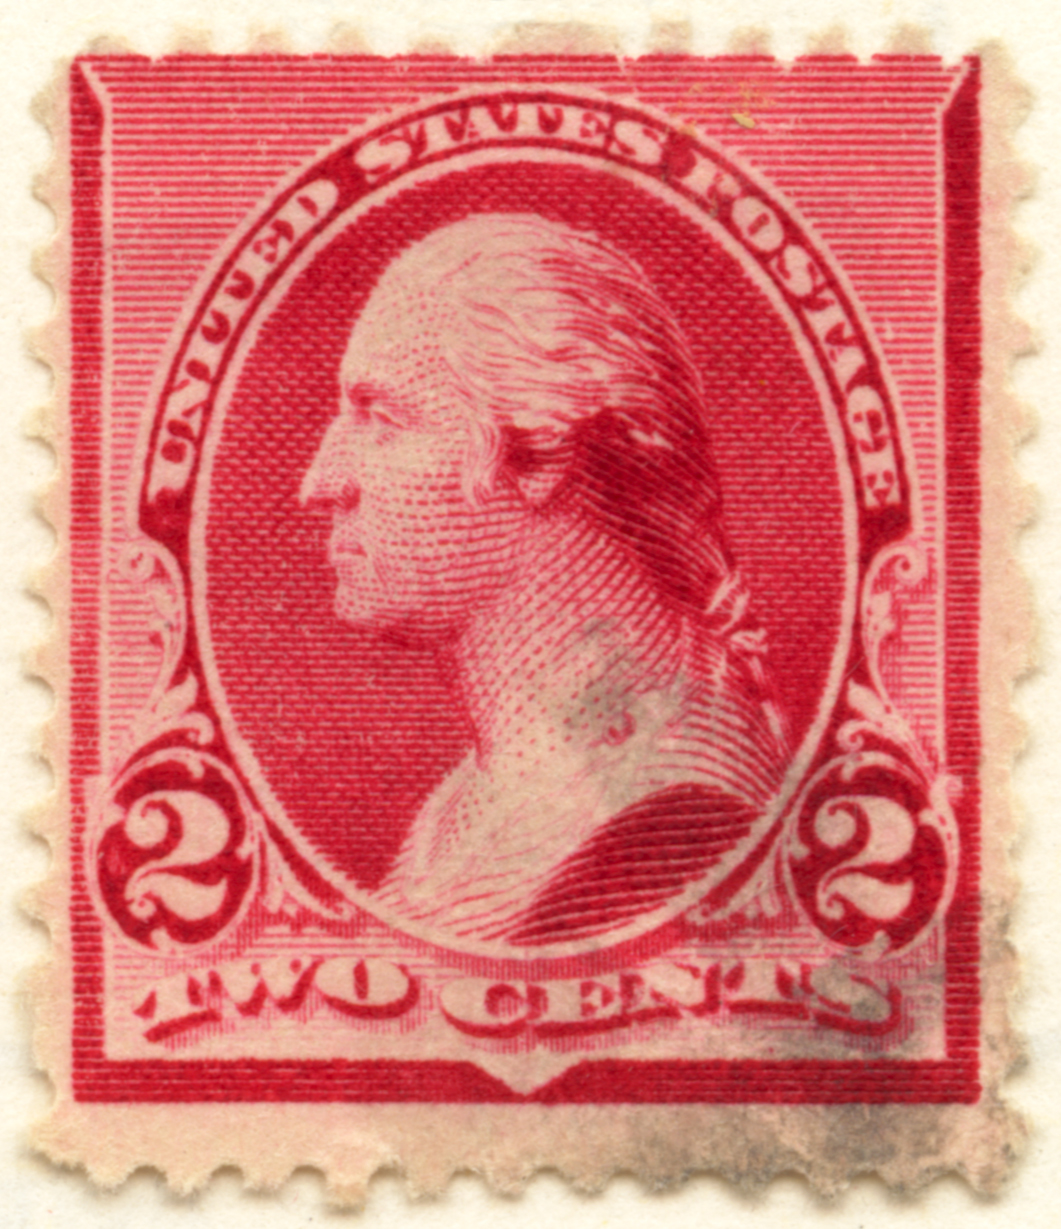 FileUS Stamp 1890 2c Washington A